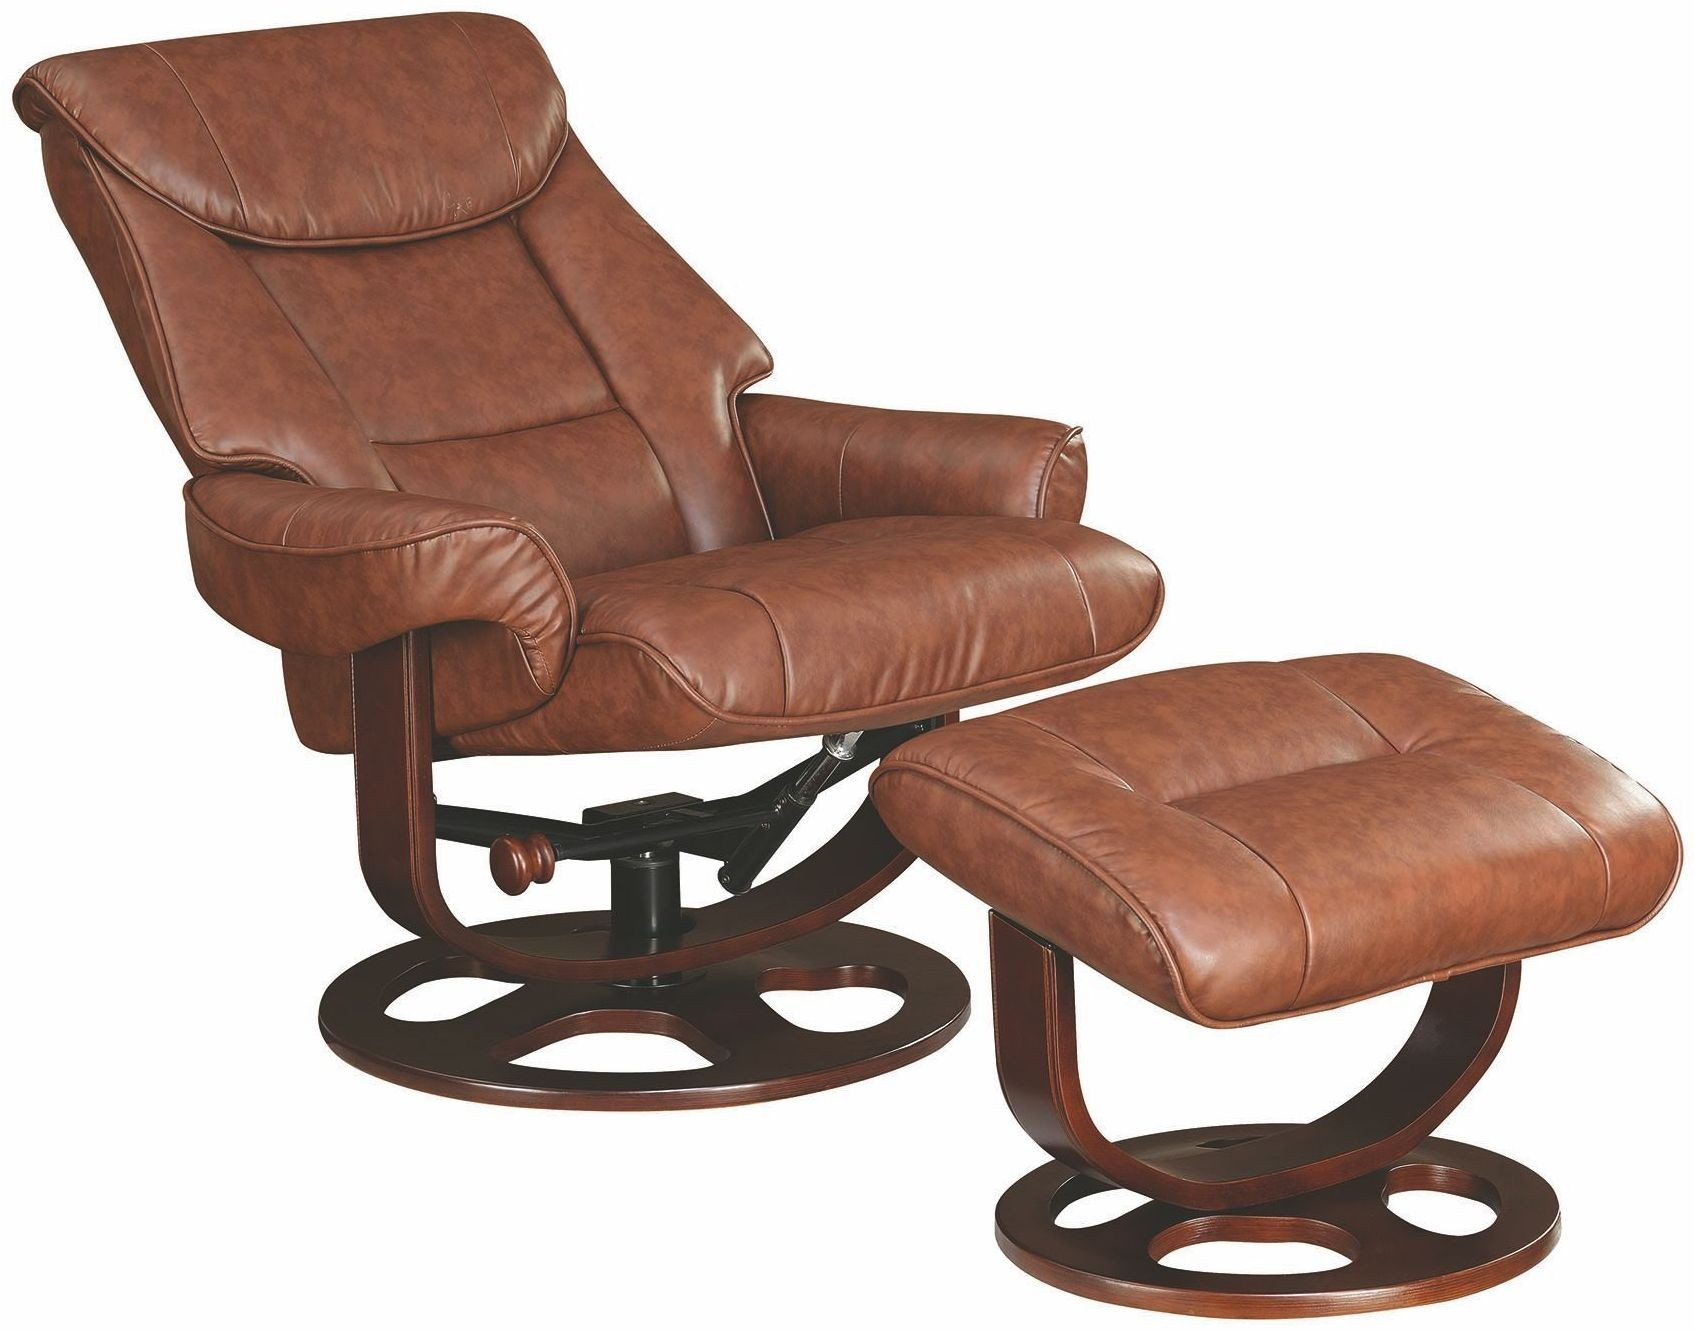 Brown glider recliner with ottoman 600087 coaster furniture for Chair with ottoman